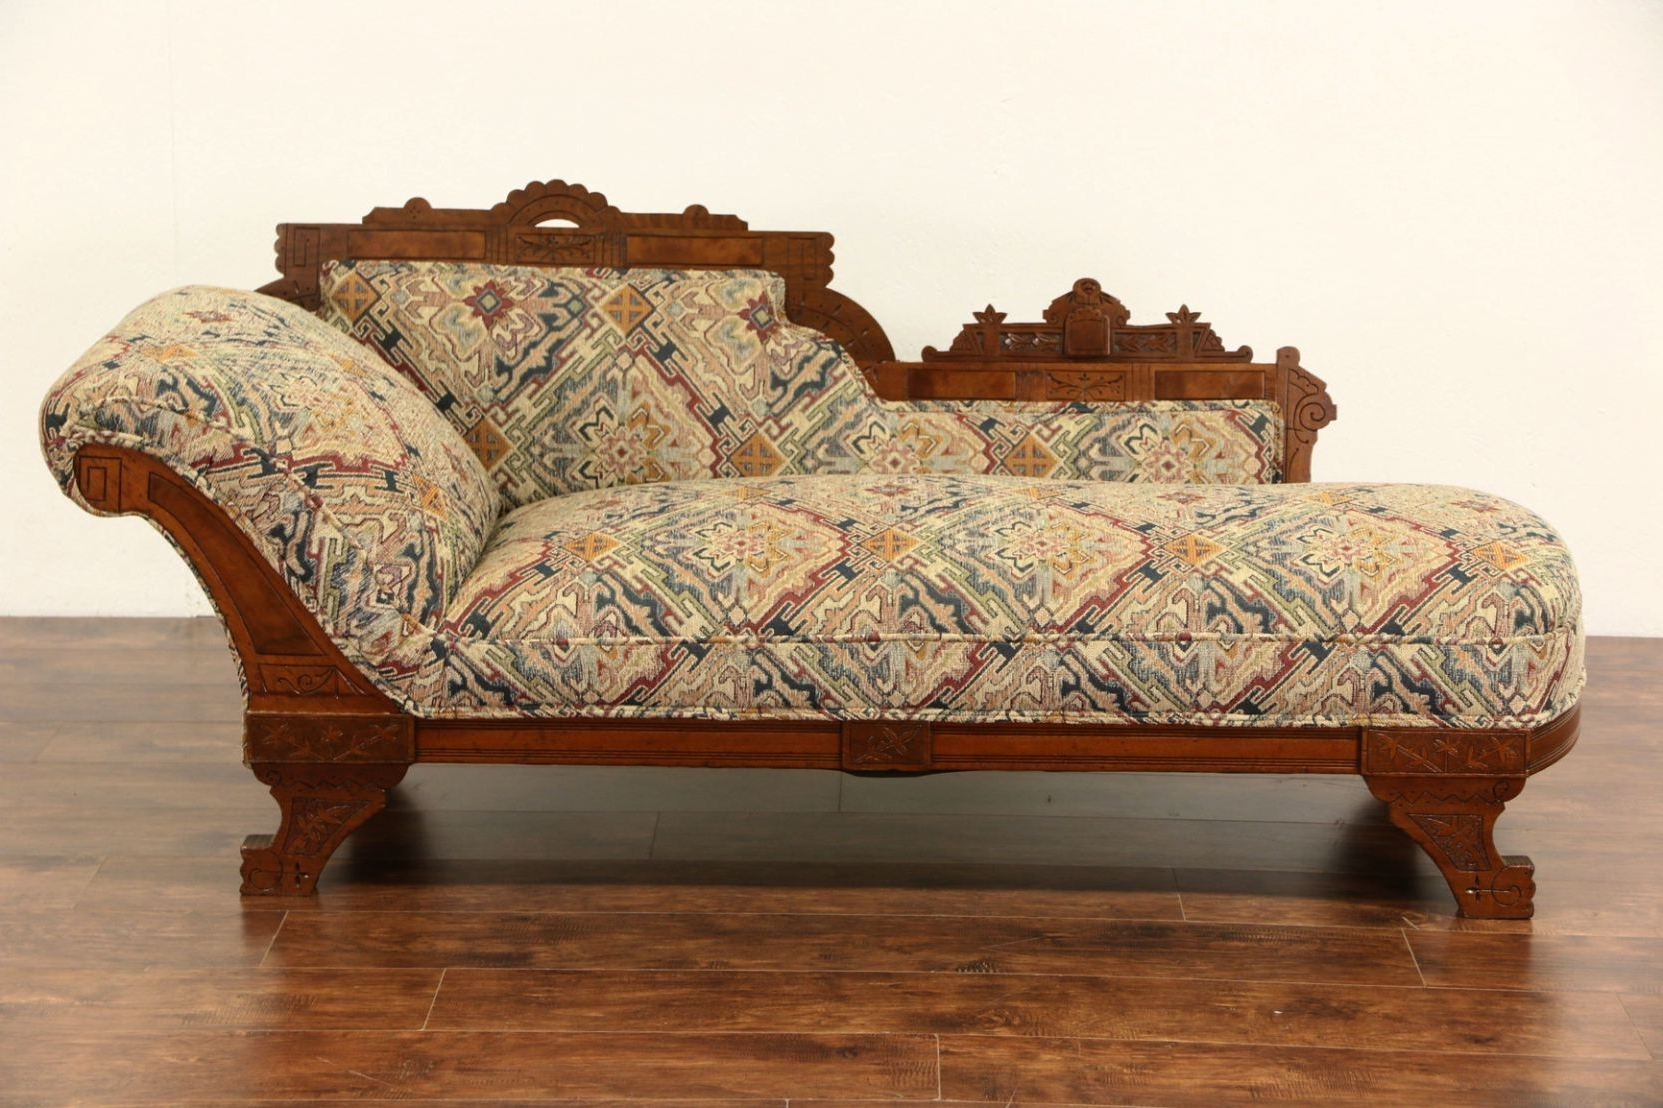 Victorian Eastlake 1880 Antique Chaise Lounge Or Fainting Couch pertaining to Widely used Victorian Chaise Lounges